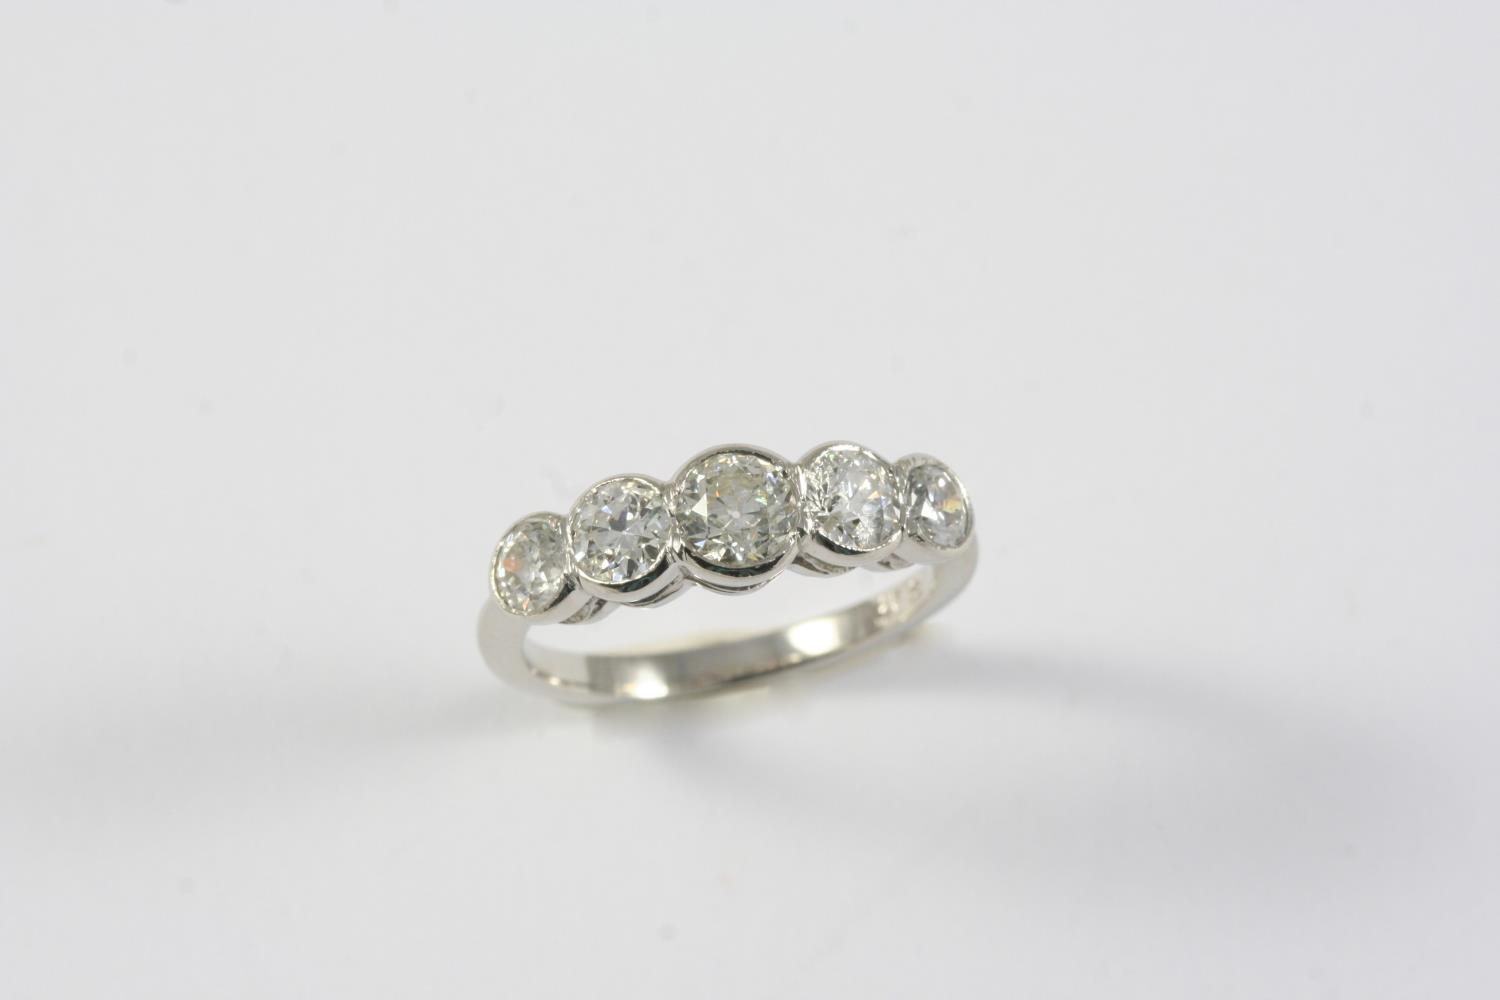 A DIAMOND FIVE STONE RING set with five graduated circular-cut diamonds weighing approximately 1.